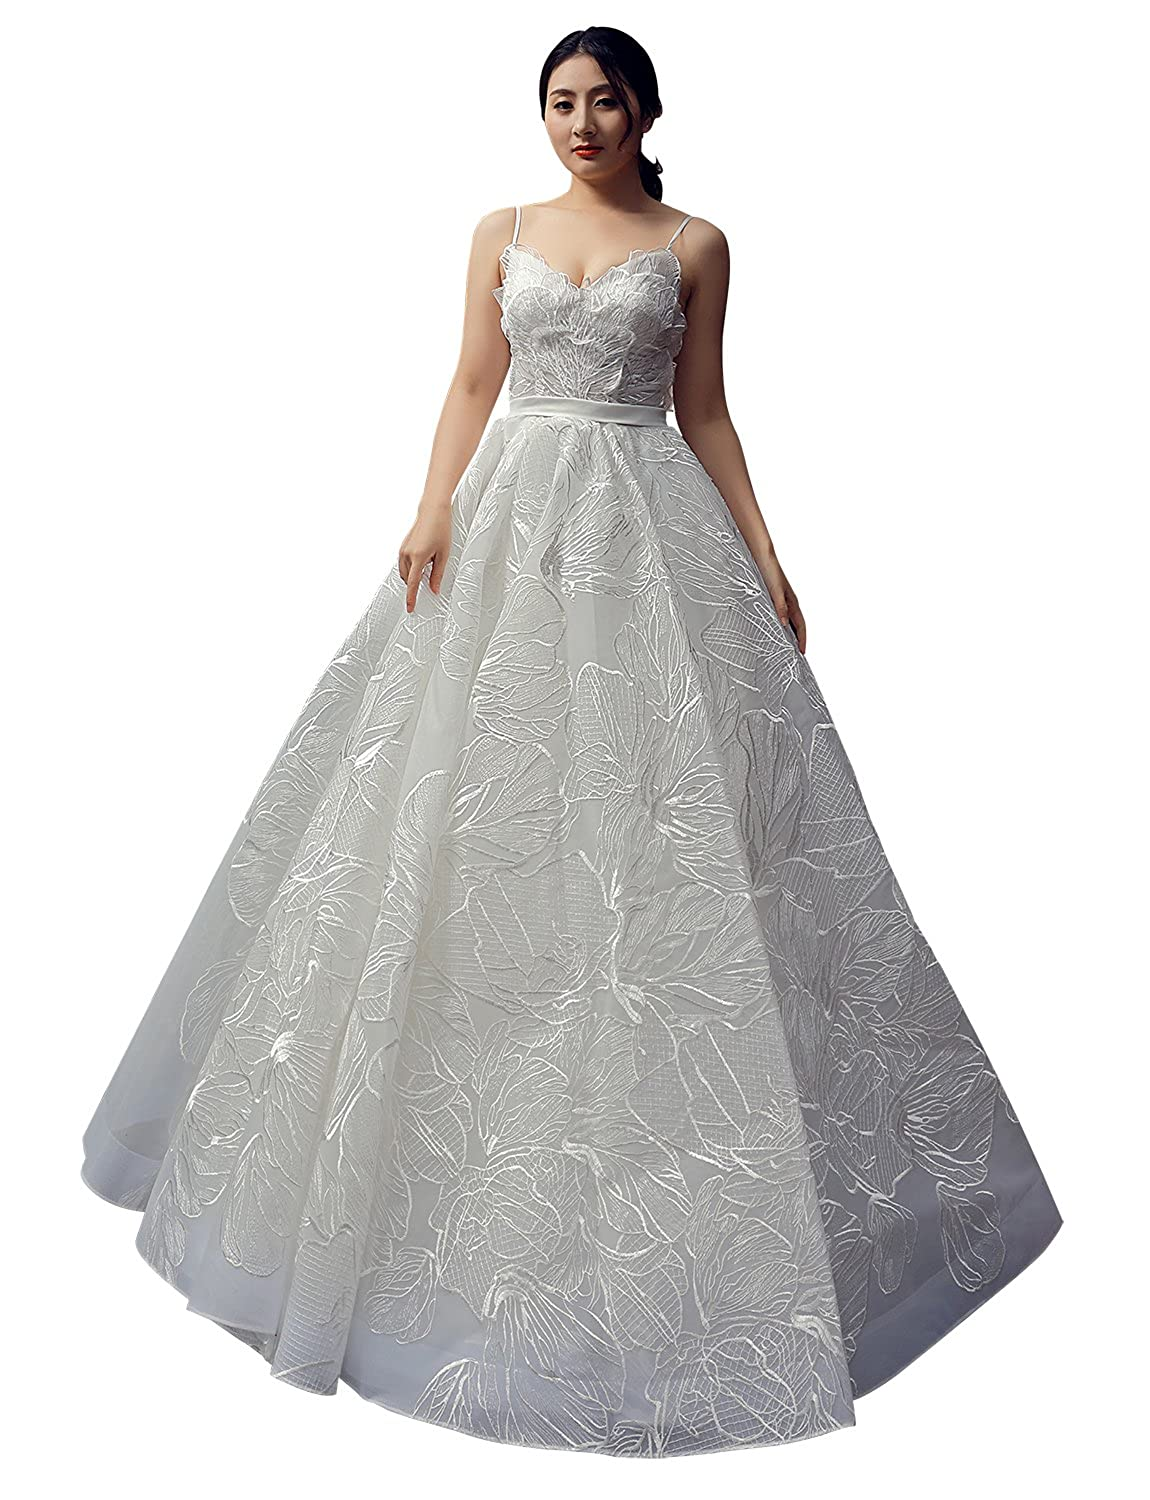 Erosebridal Lace Wedding Dress Bridal Gowns Spaghetti Straps Princess Ball Evening Formal For Women At Amazon Women's Clothing Store: Unique Wedding Dresses Princess Ball Gown At Websimilar.org